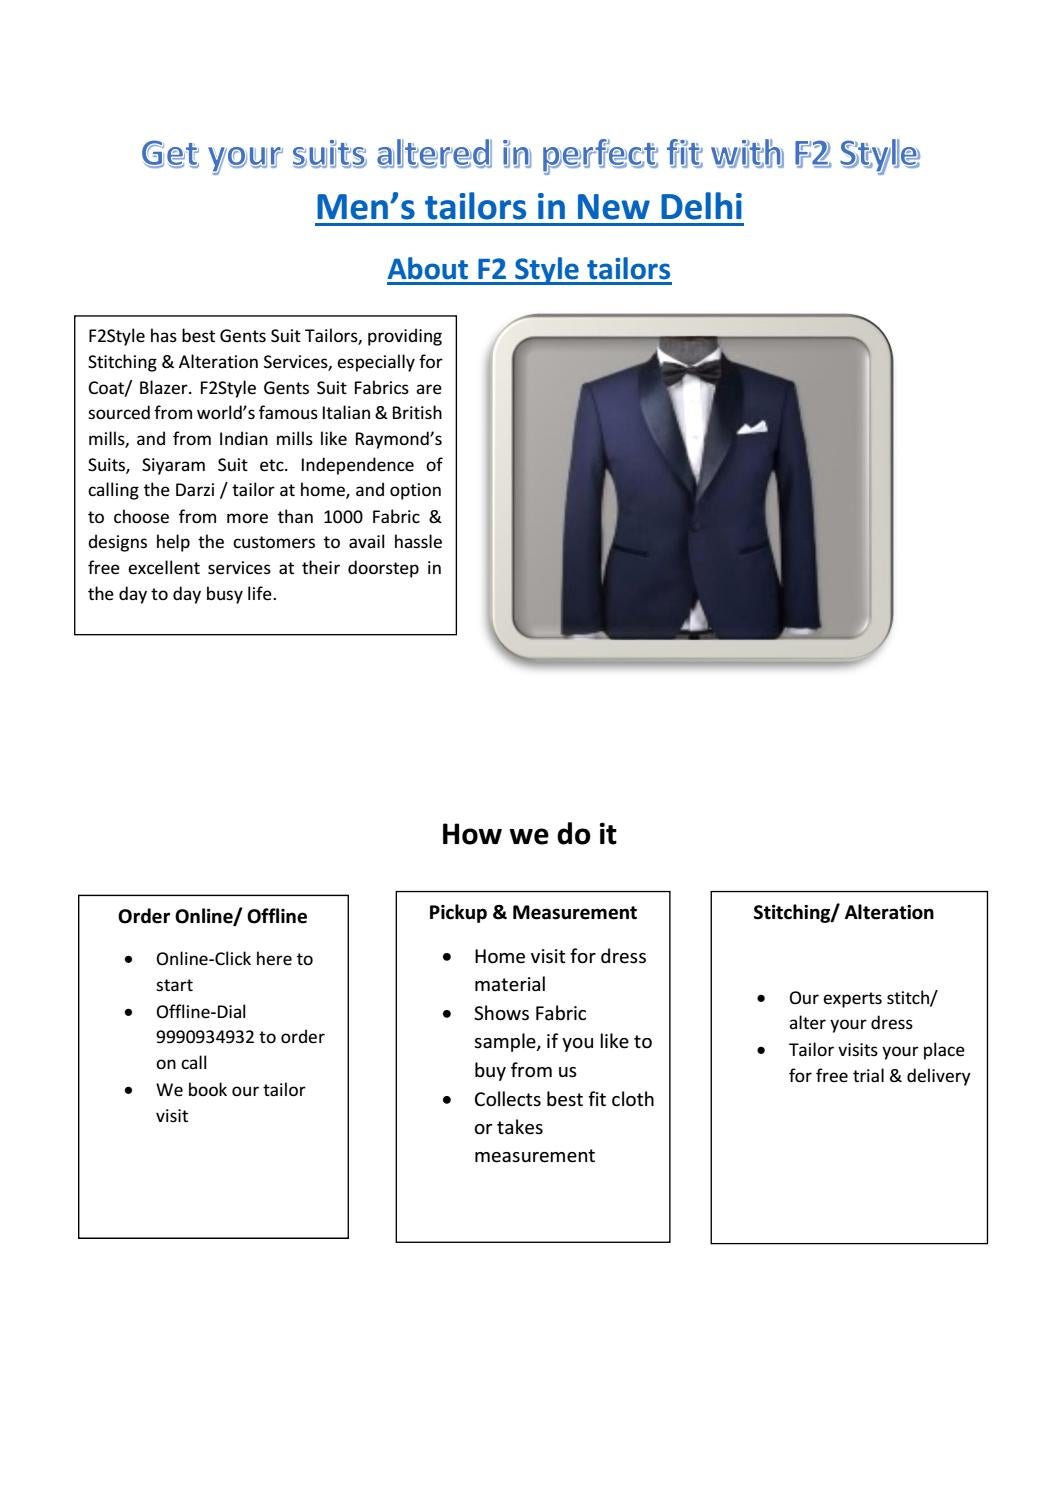 Get Your Suits Altered In Perfect Fit With F2 Style Gents Tailors Near Me By Rajesh Sharma Issuu